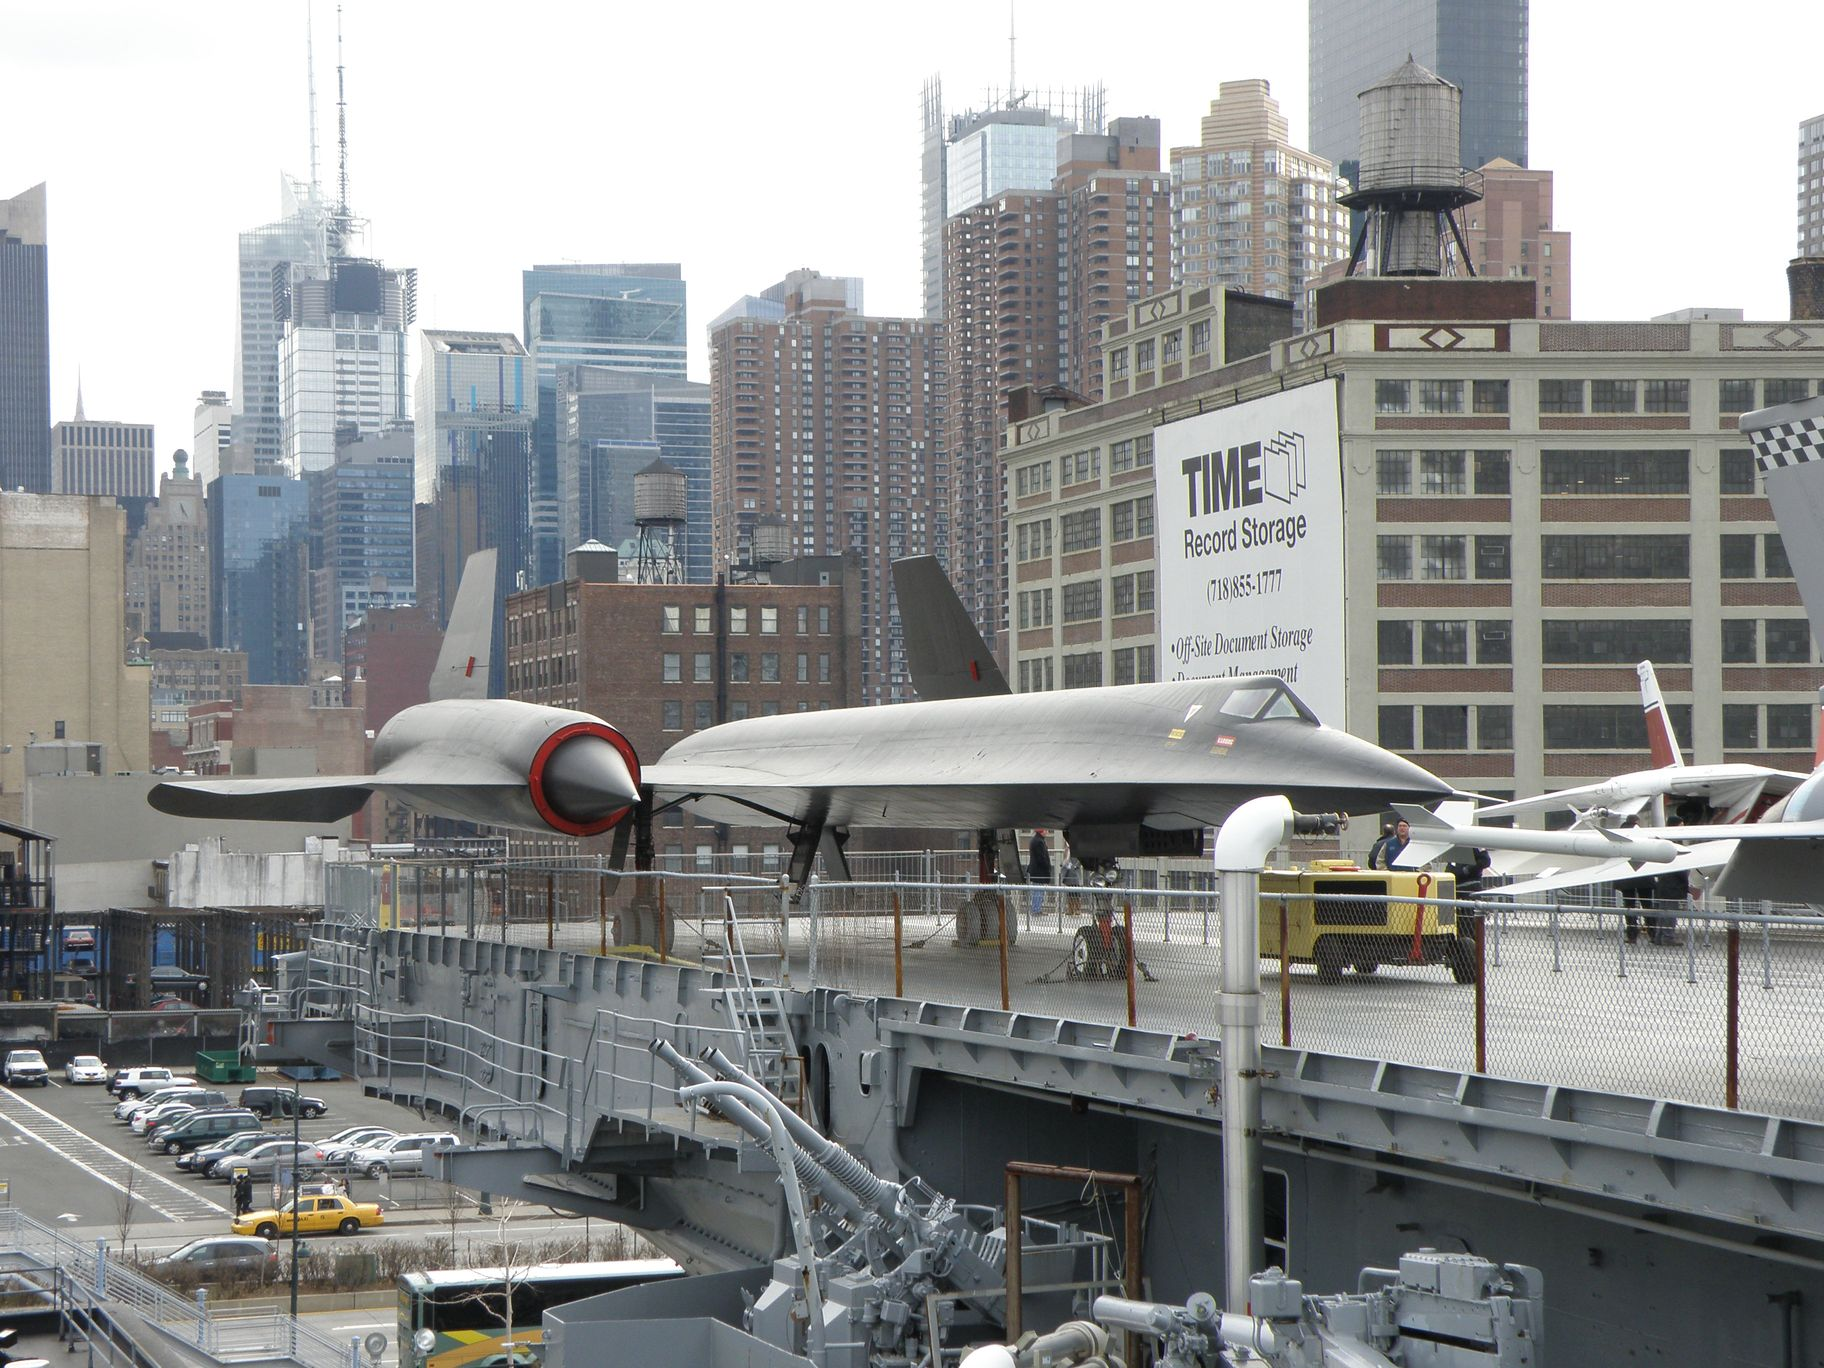 Intrepid Sea, Air and Space Museum: A12